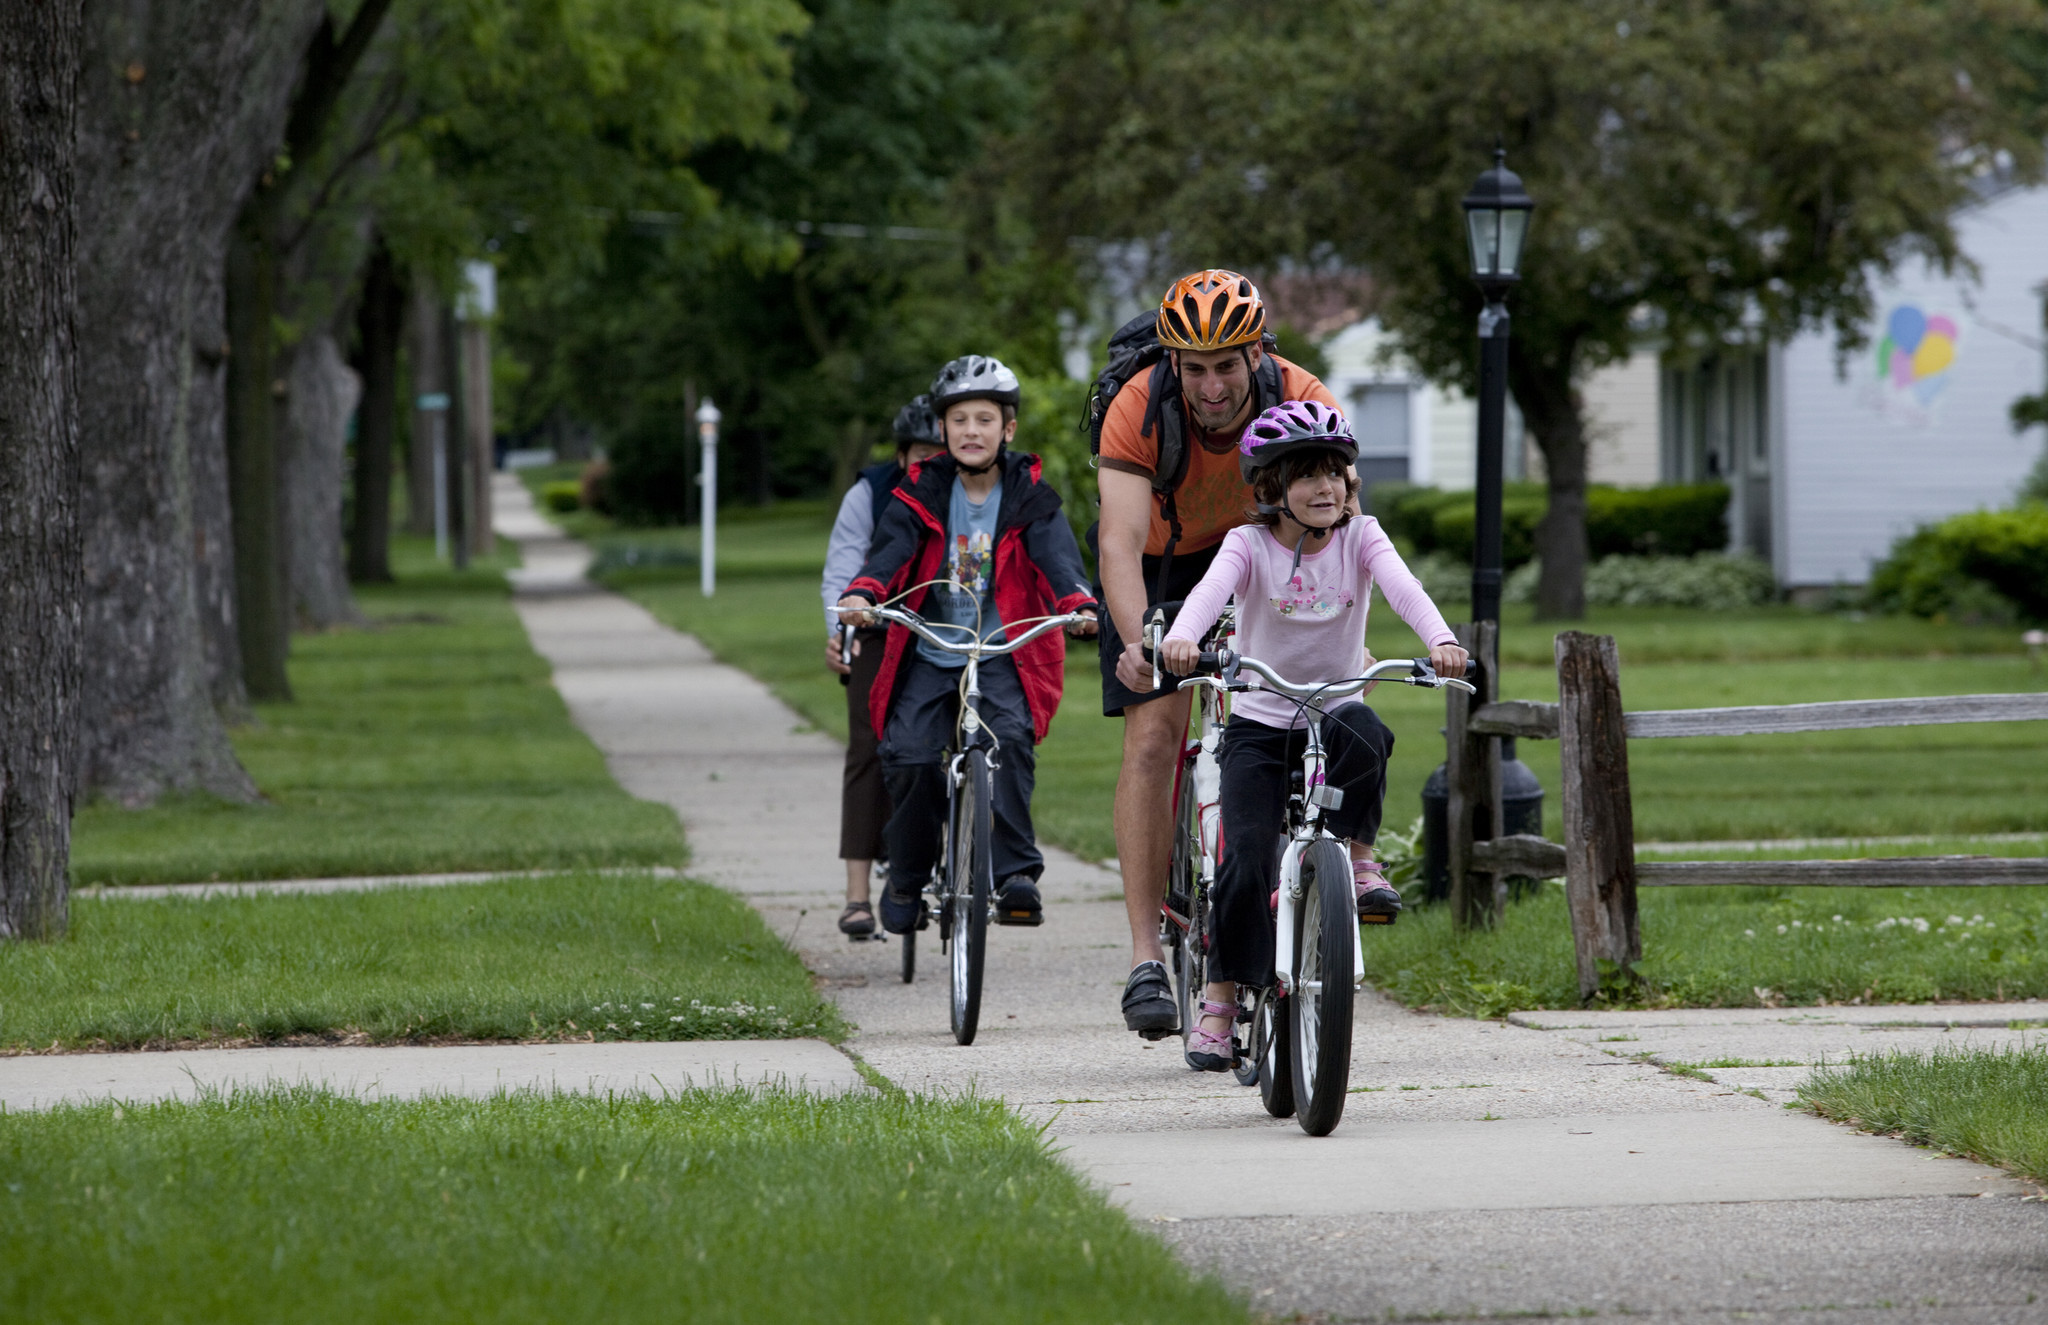 A riff on the monthly Critical Mass rides, Kidical Mass assembles families for bicycling fun through parks and residential streets. The leisurely rides, about an hour long, happen monthly in Logan Square and Roscoe Village, quarterly in Lincoln Square. Wear your helmets, of course&#8212and...